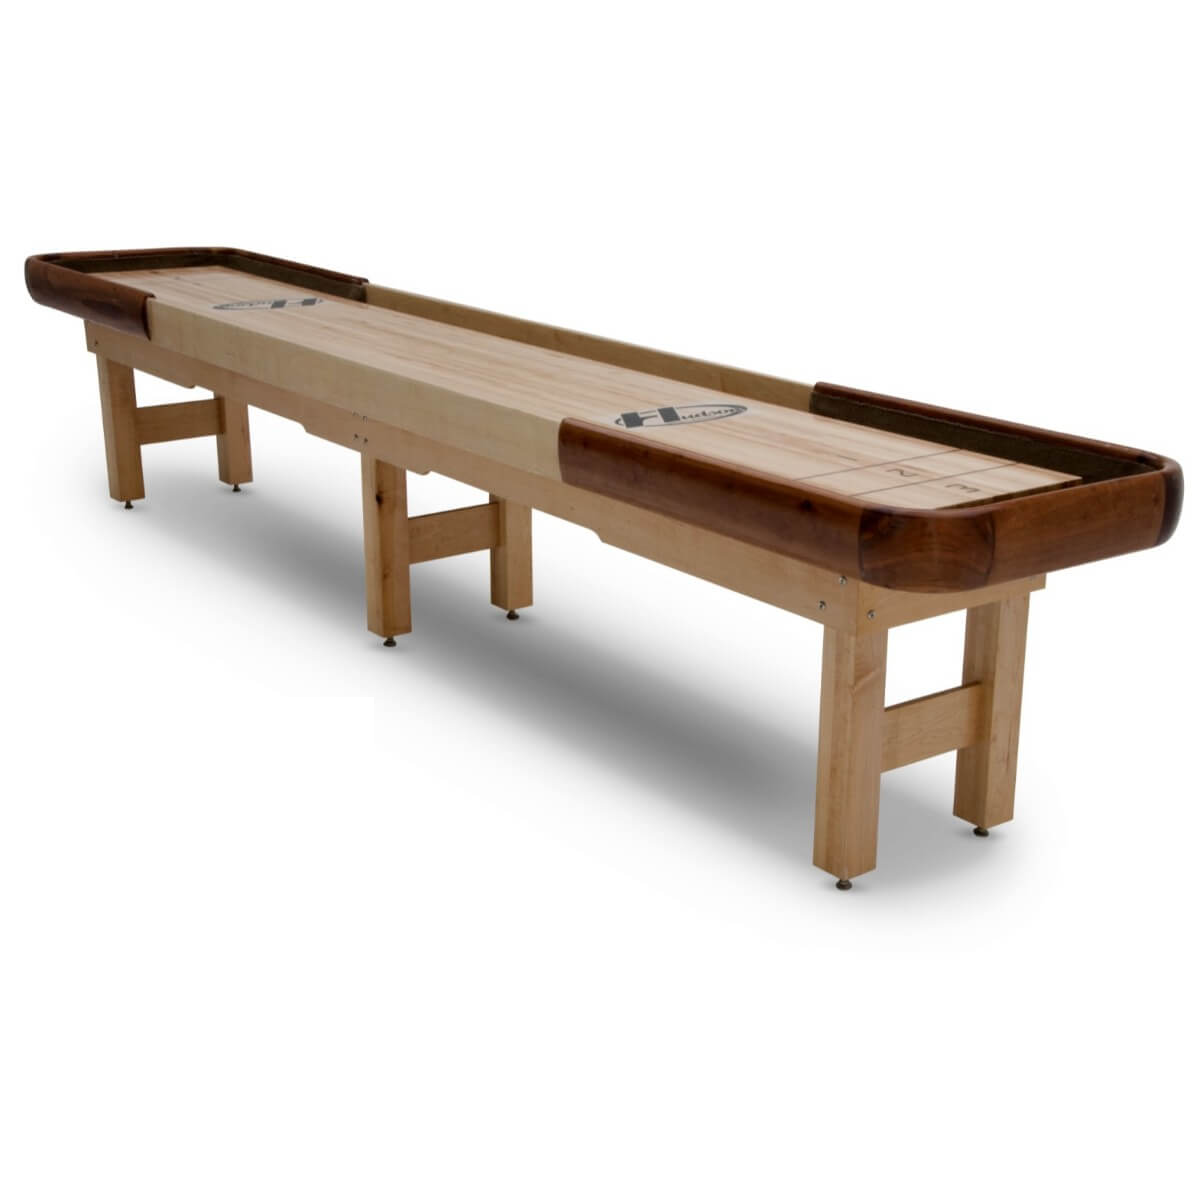 Hudson Cirrus Shuffleboard Table 9'-22' Indoor/Outdoor with Custom Wood Options - Gaming Blaze